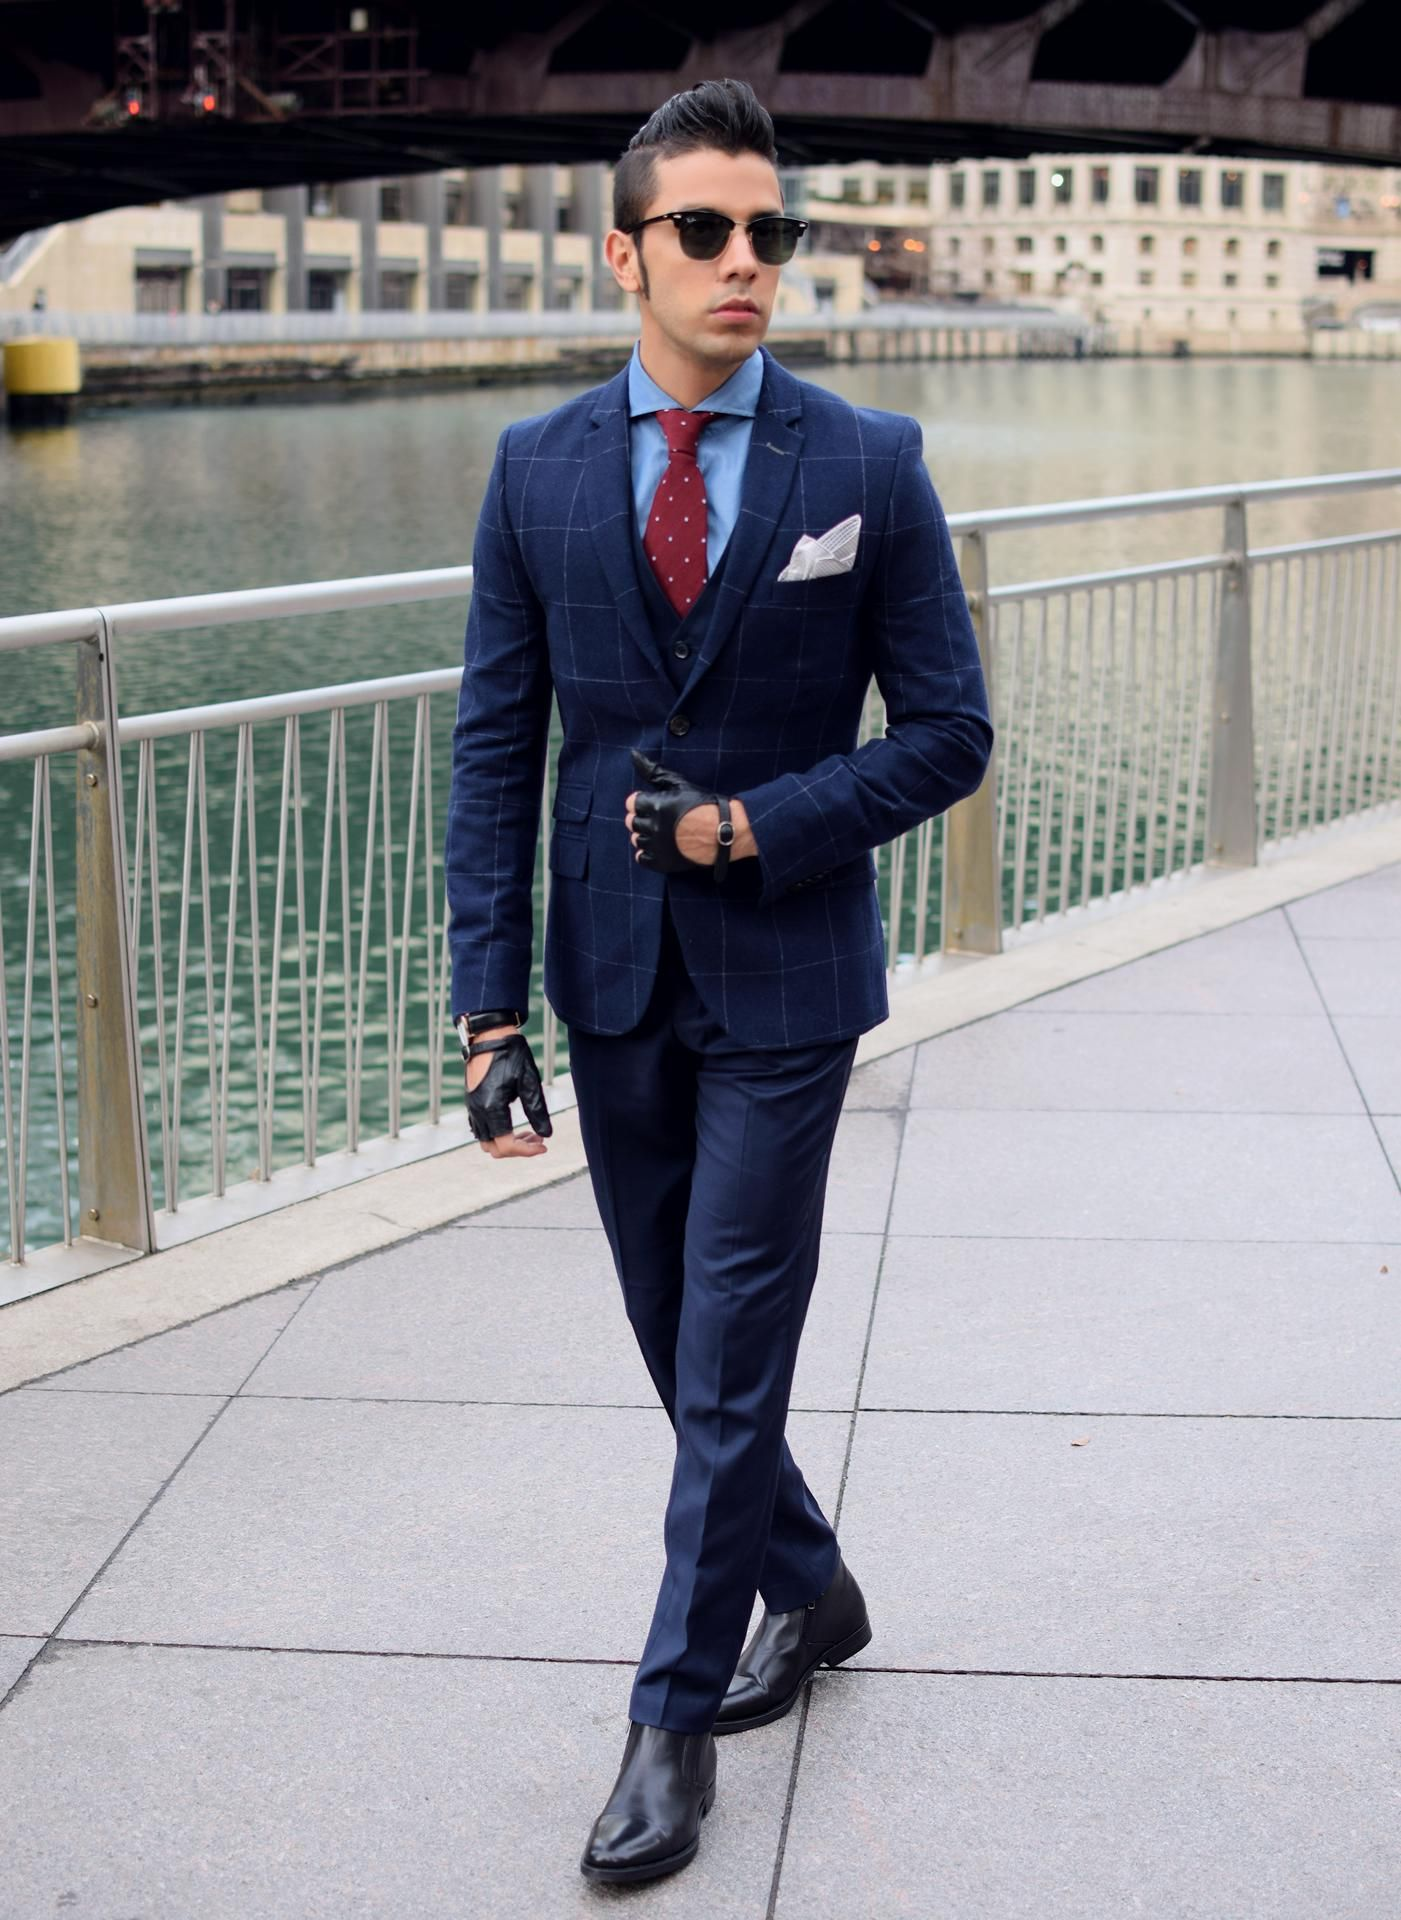 be007325b1f7 Chelsea boots with navy suit from The Mood Maker - Frankodean ...